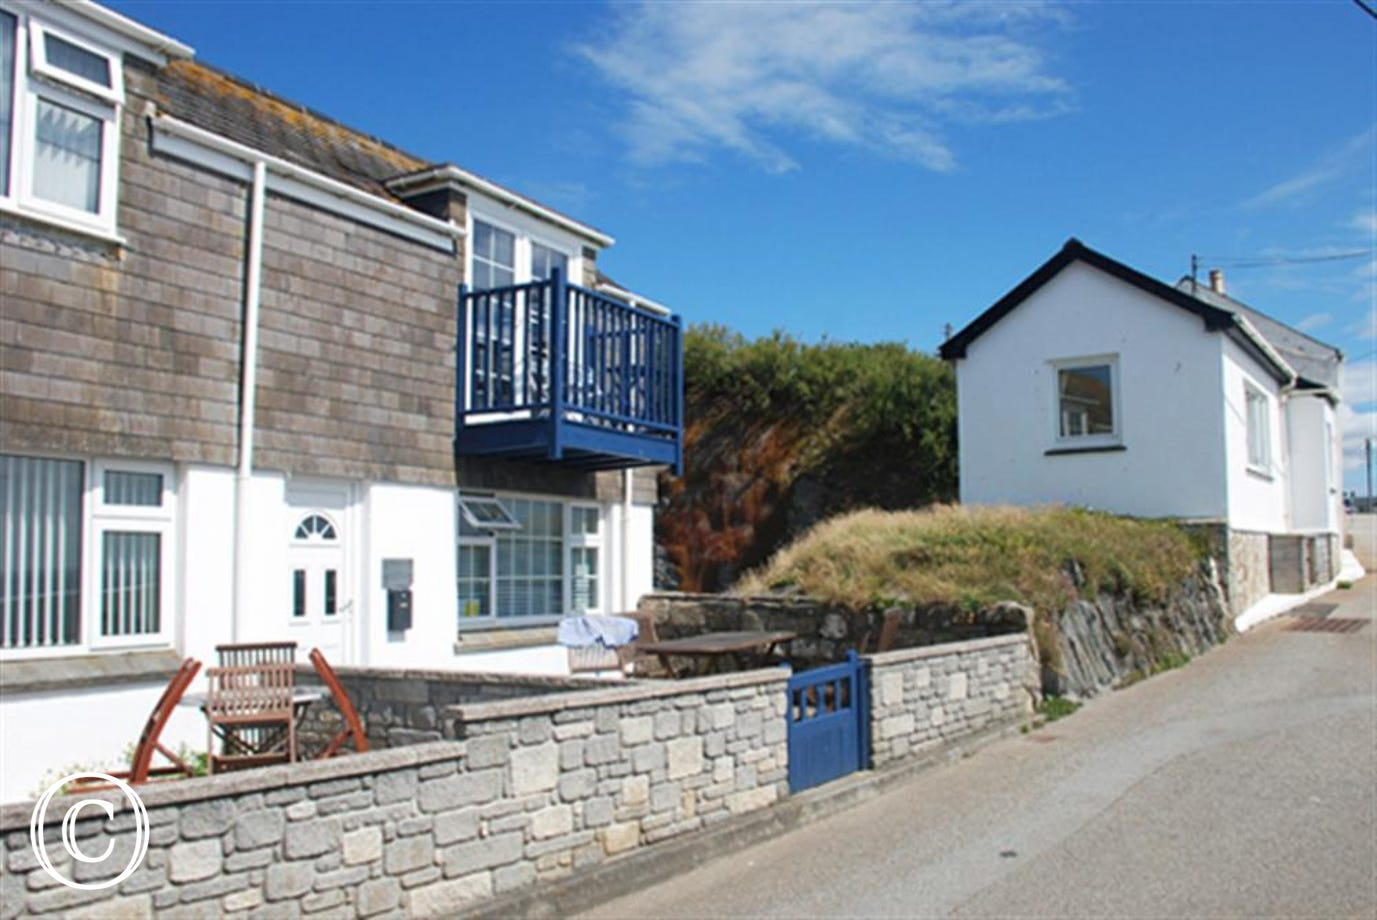 Cliff Top Cottage exterior